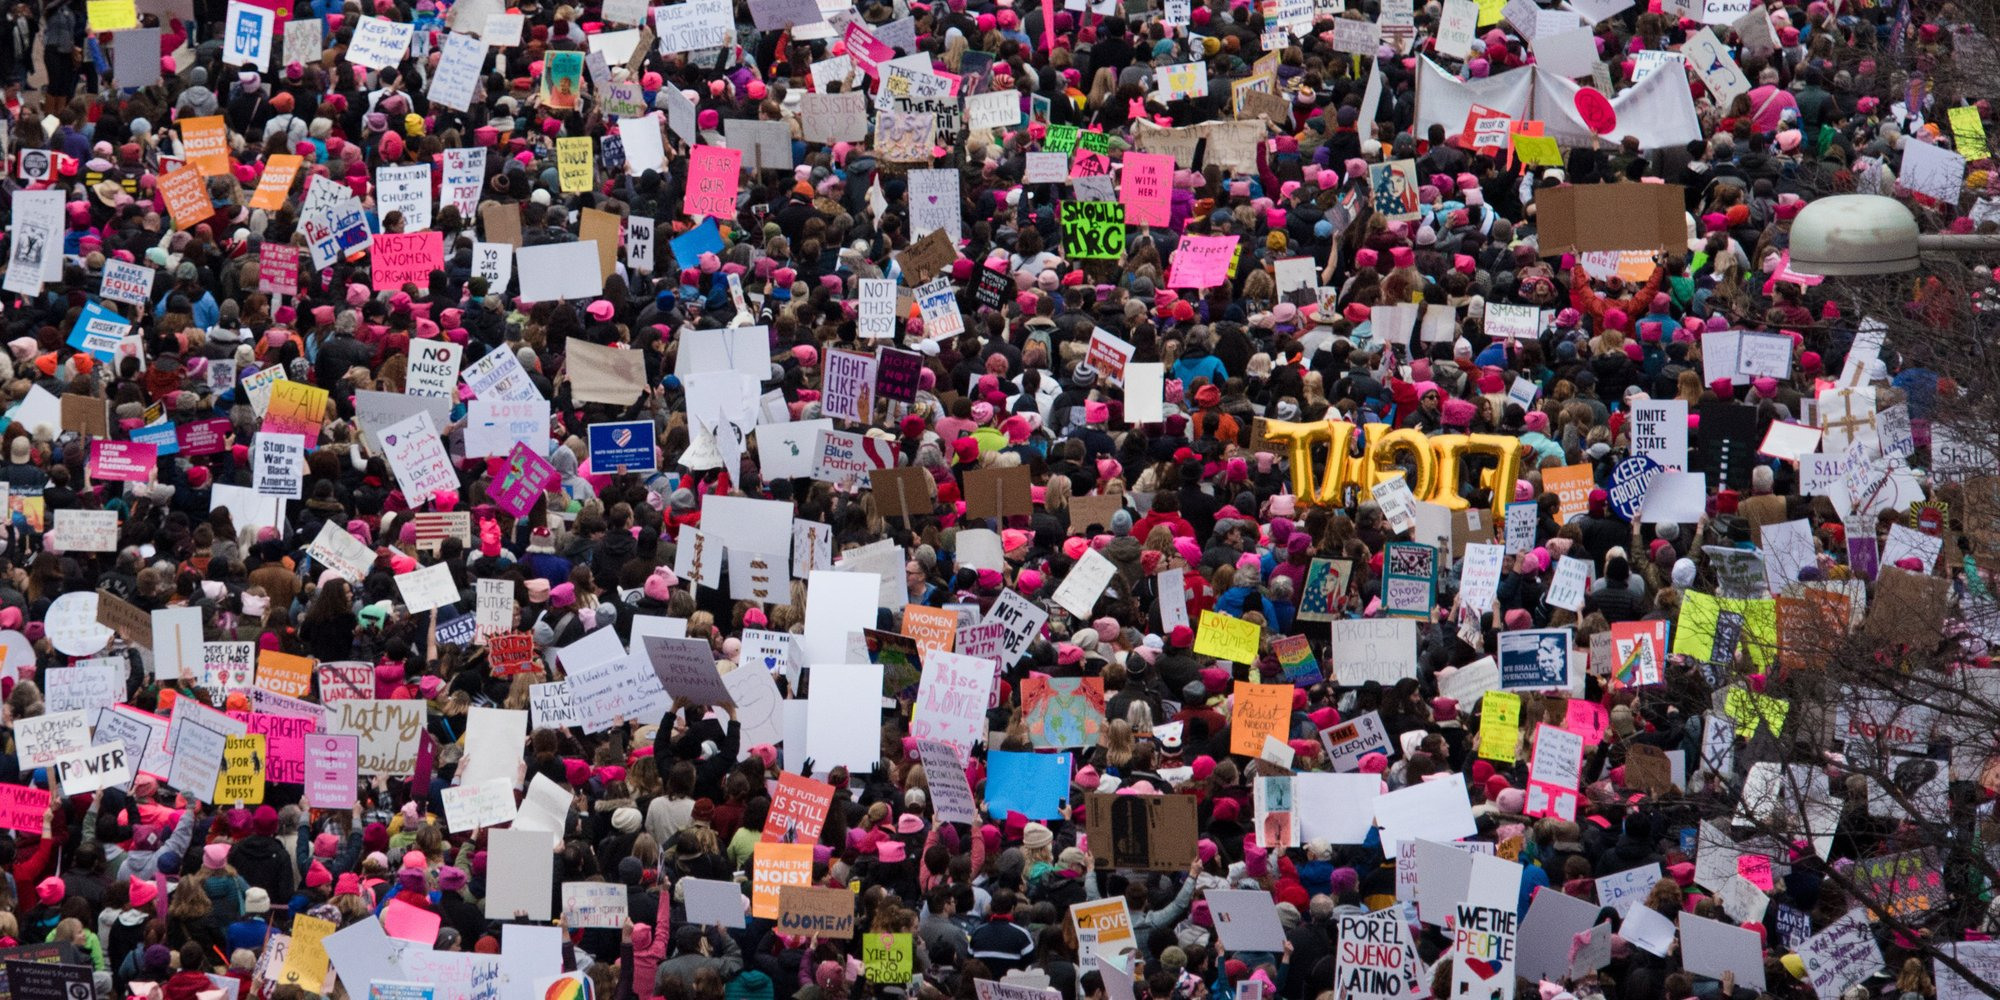 Experimental single made completely from Women's March recordings will give you goosebumps https://t.co/Lhb6YRs2Bk https://t.co/P0wt9umIDd